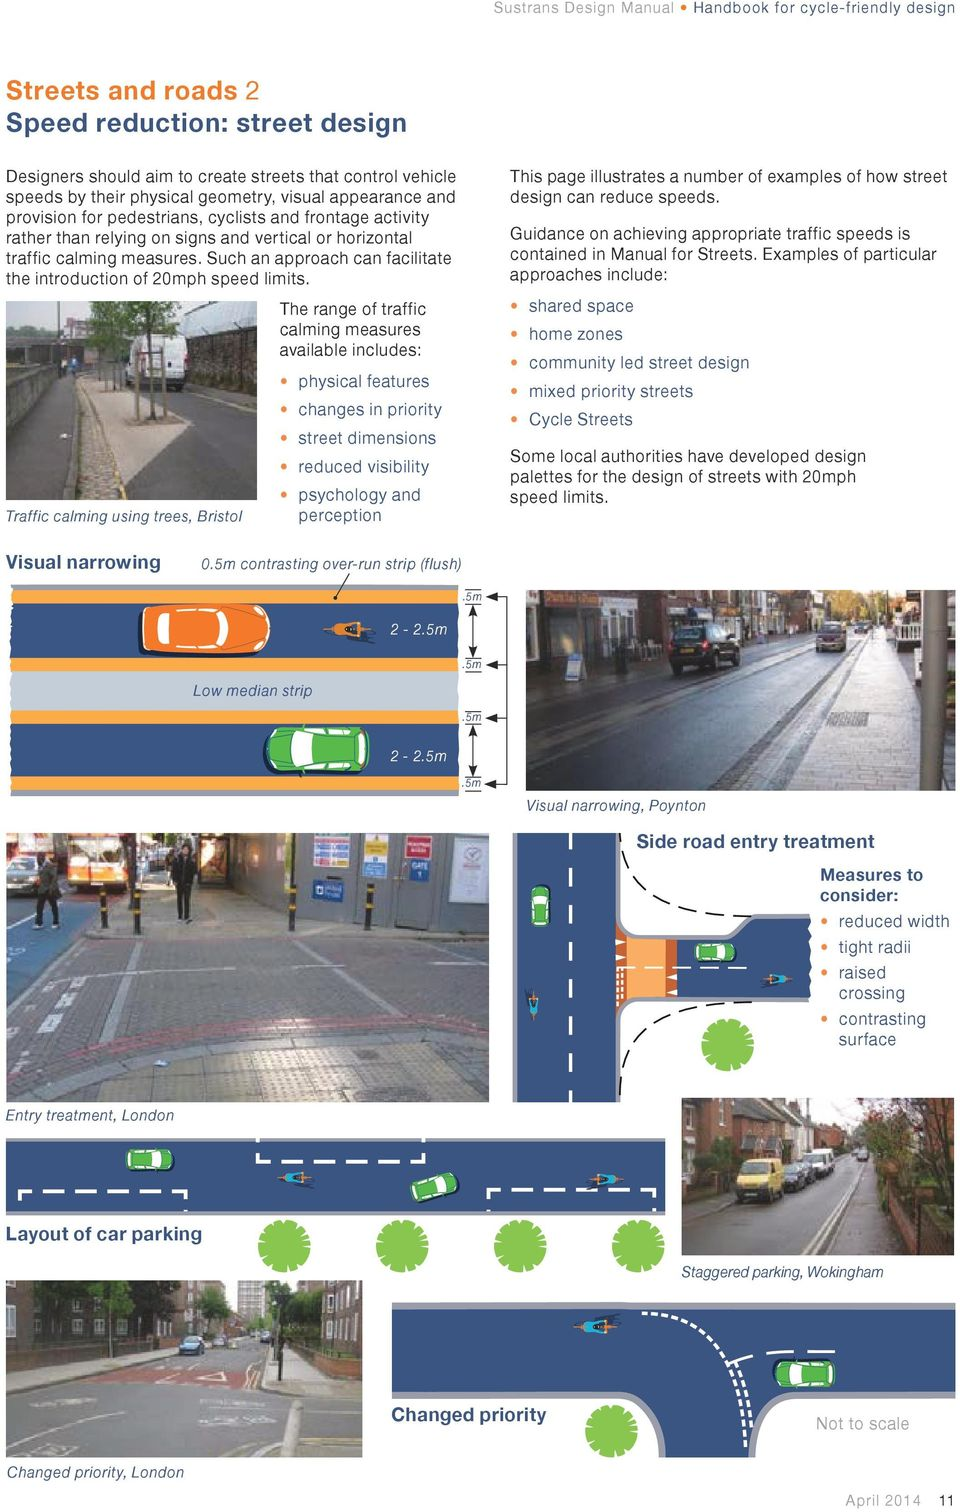 The range of traffic calming measures available includes: physical features changes in priority street dimensions reduced visibility psychology and Traffic calming using trees, Bristol perception